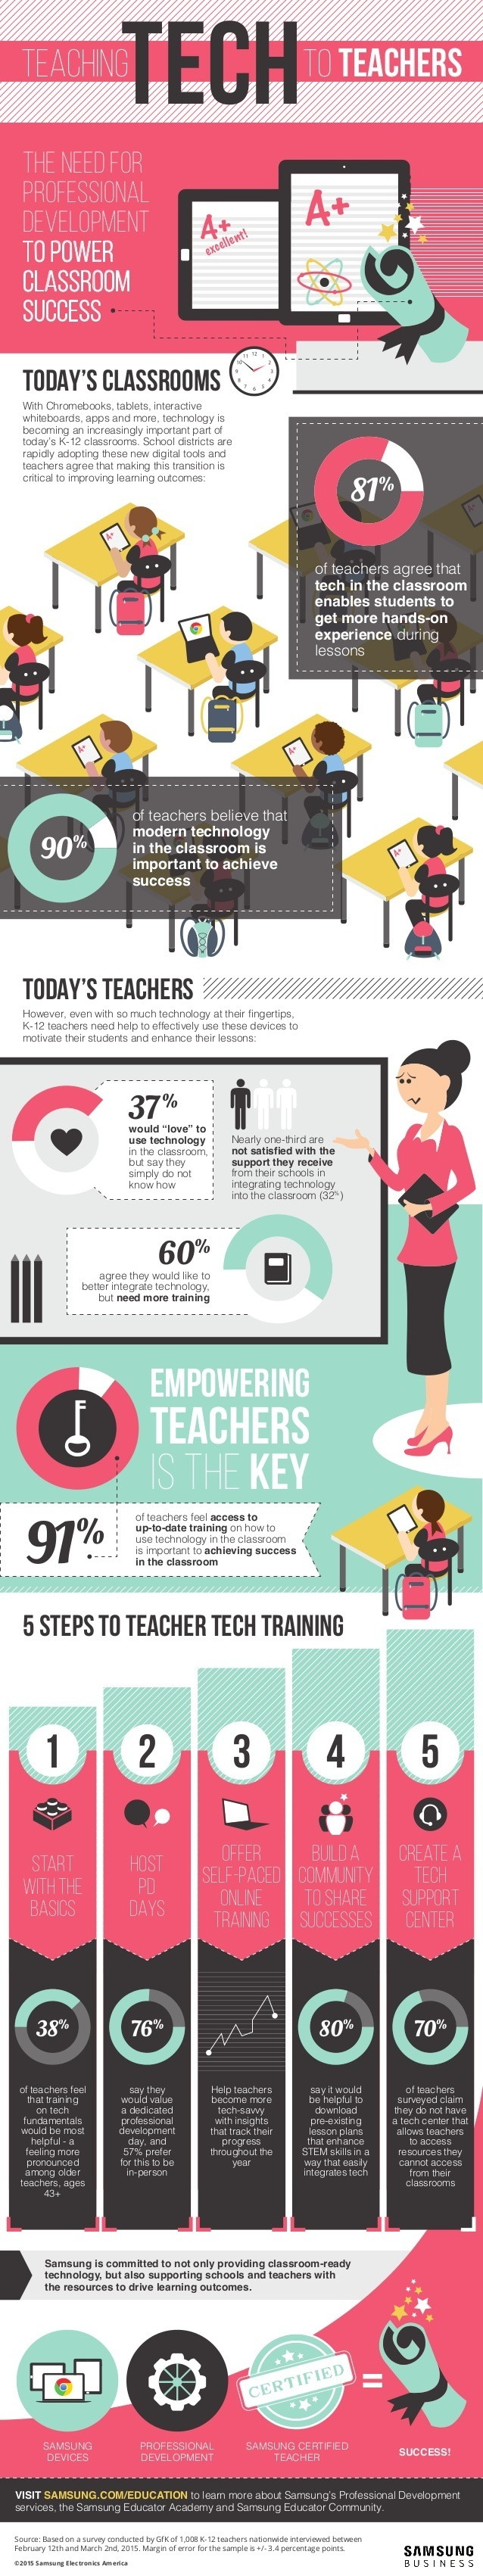 Teaching Tech to Teachers Infographic